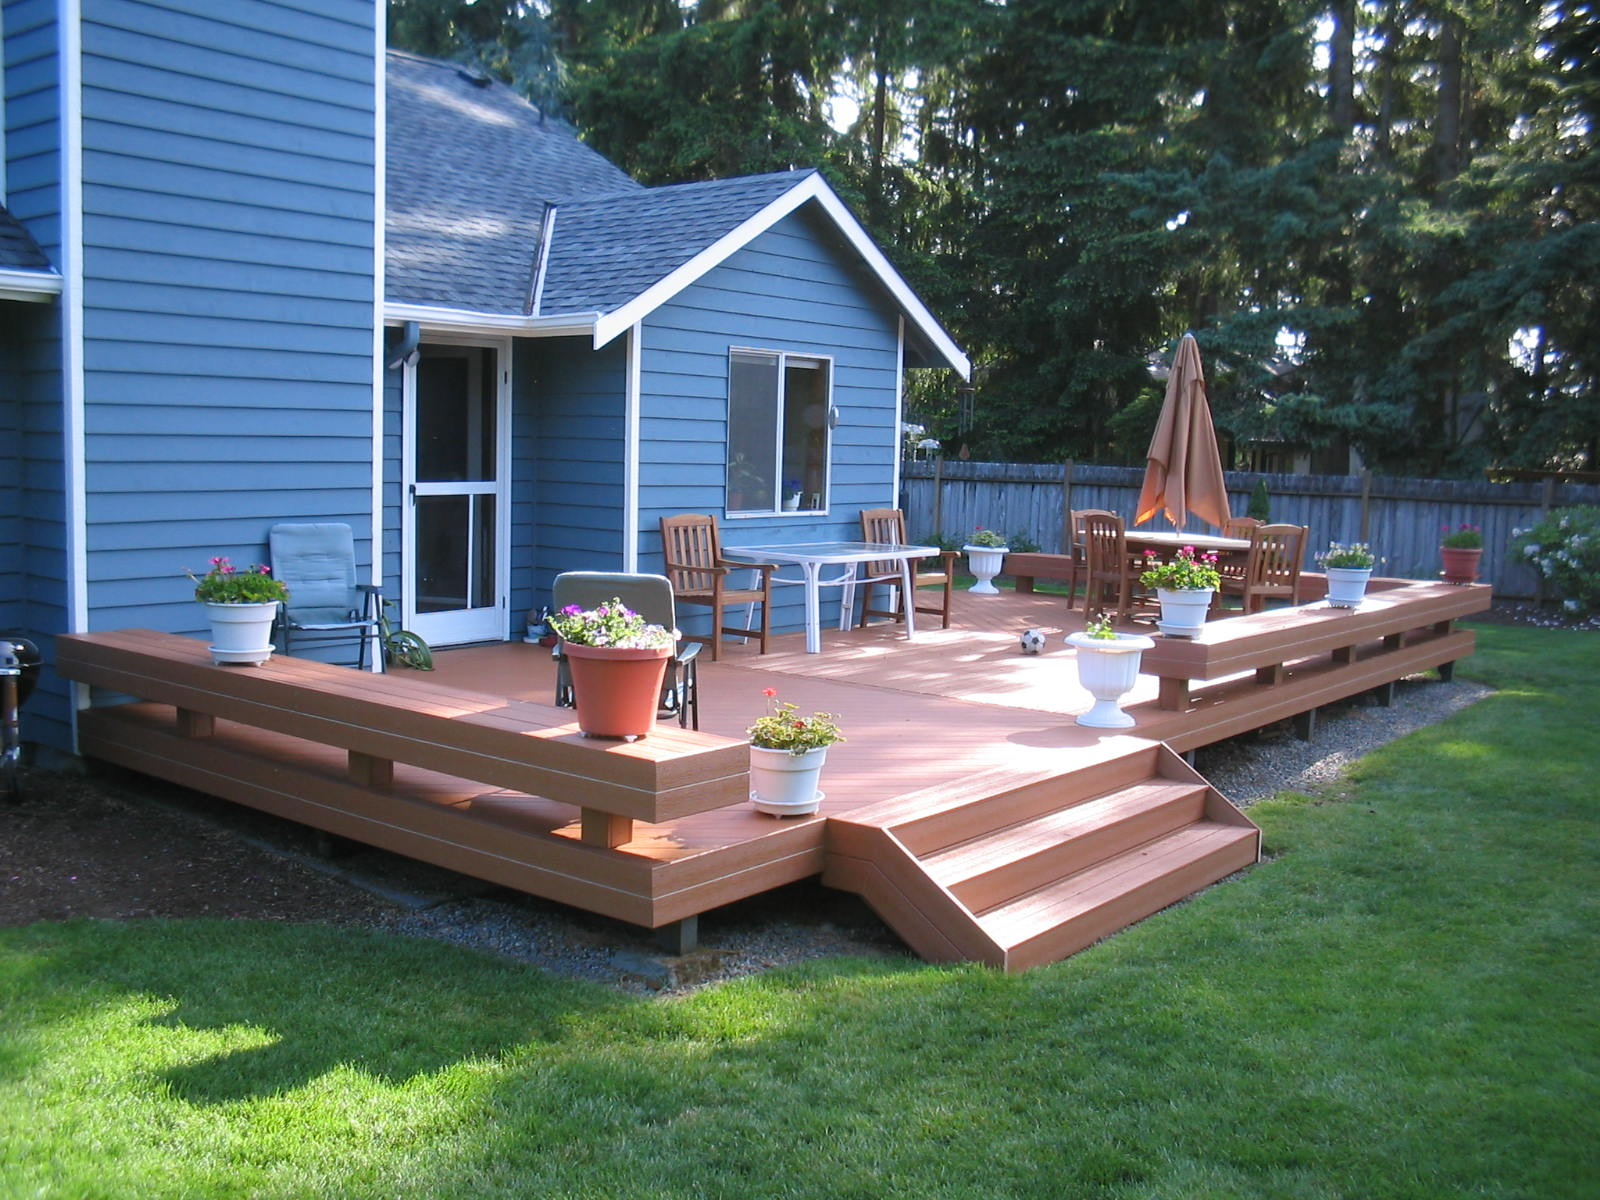 Small deck design ideas st louis decks screened Small deck ideas